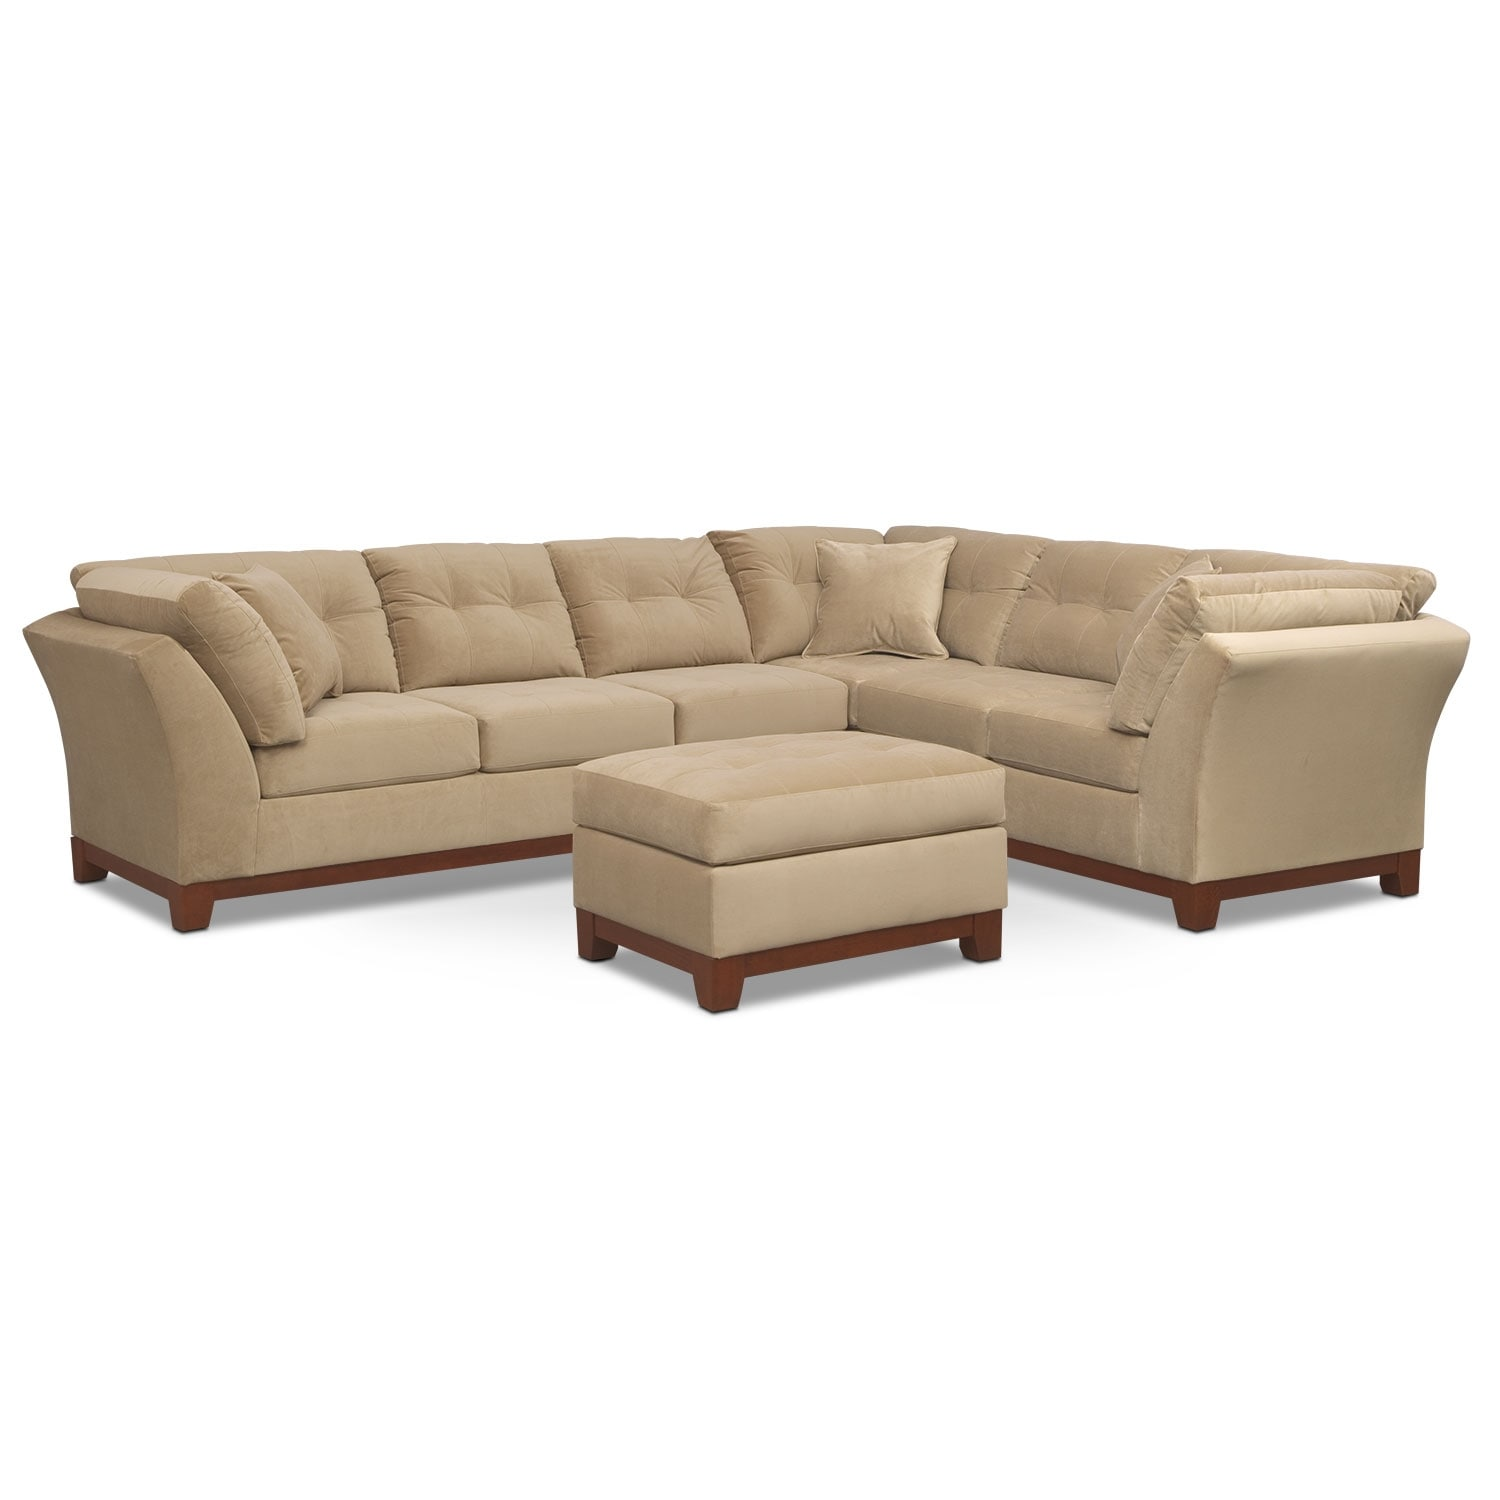 Solace Cocoa II 2 Pc. Sectional (Reverse) and Ottoman